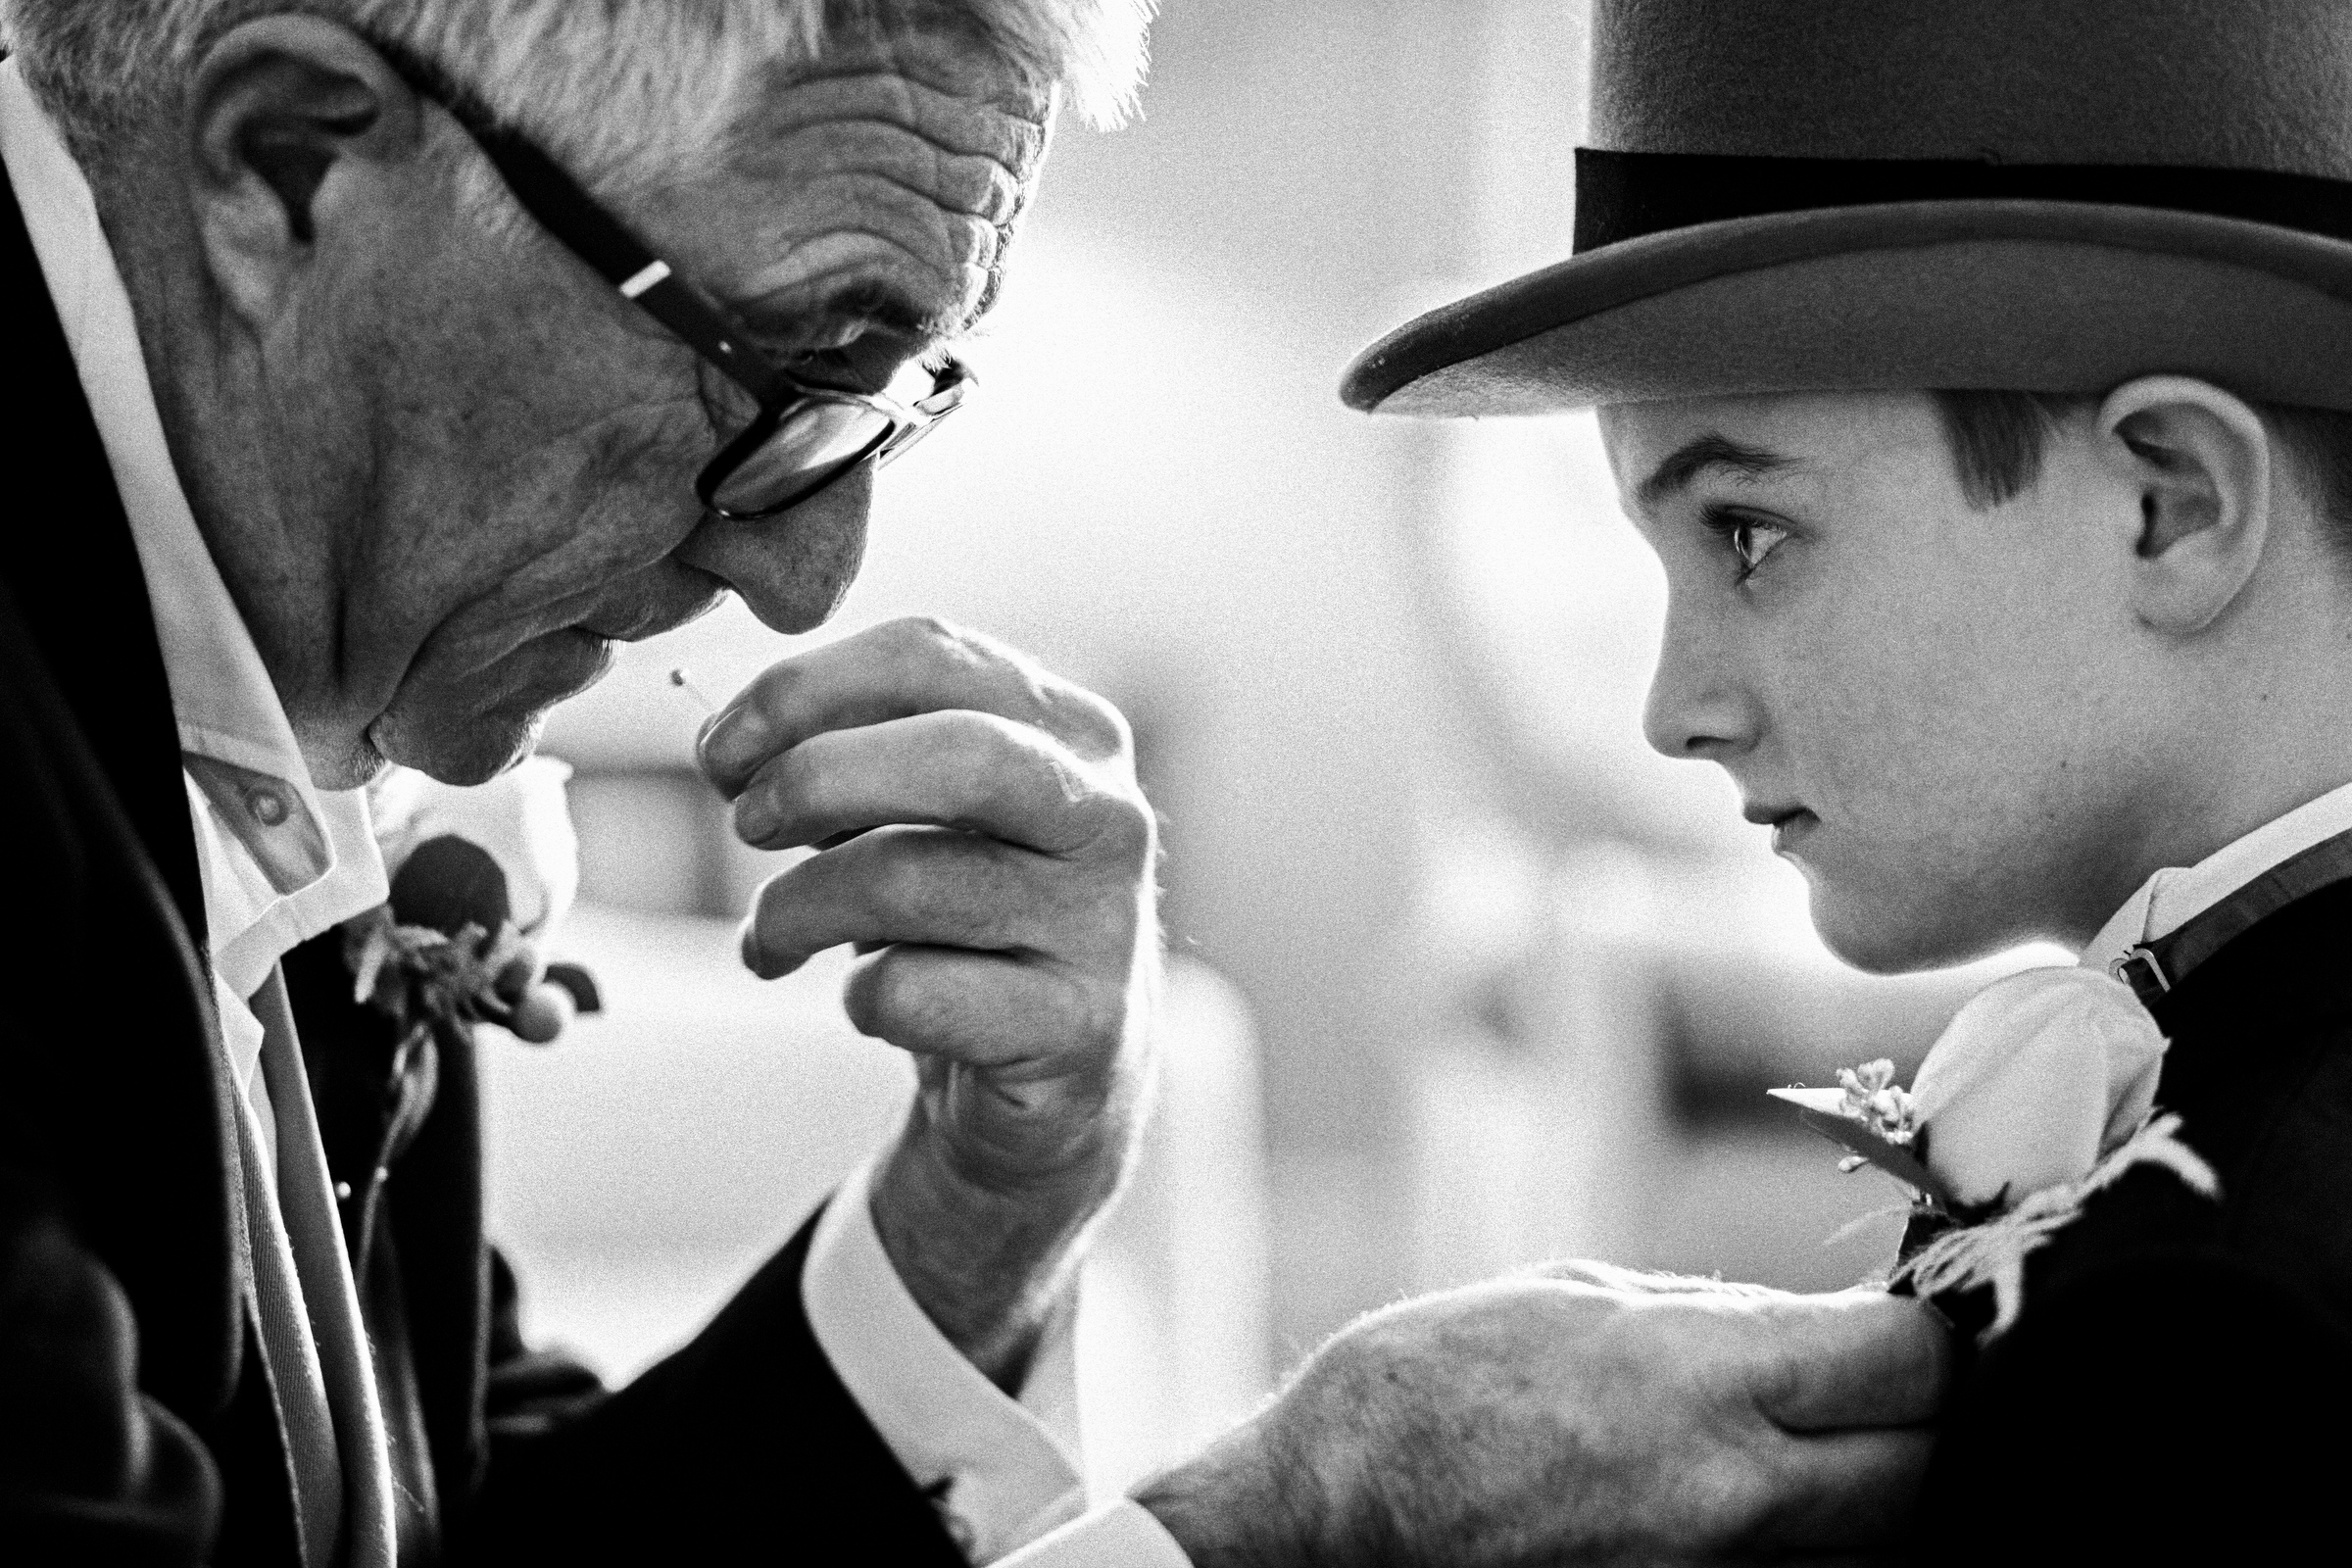 Grandfather pins boutonniere on grandson - photo by Jeff Ascough, London